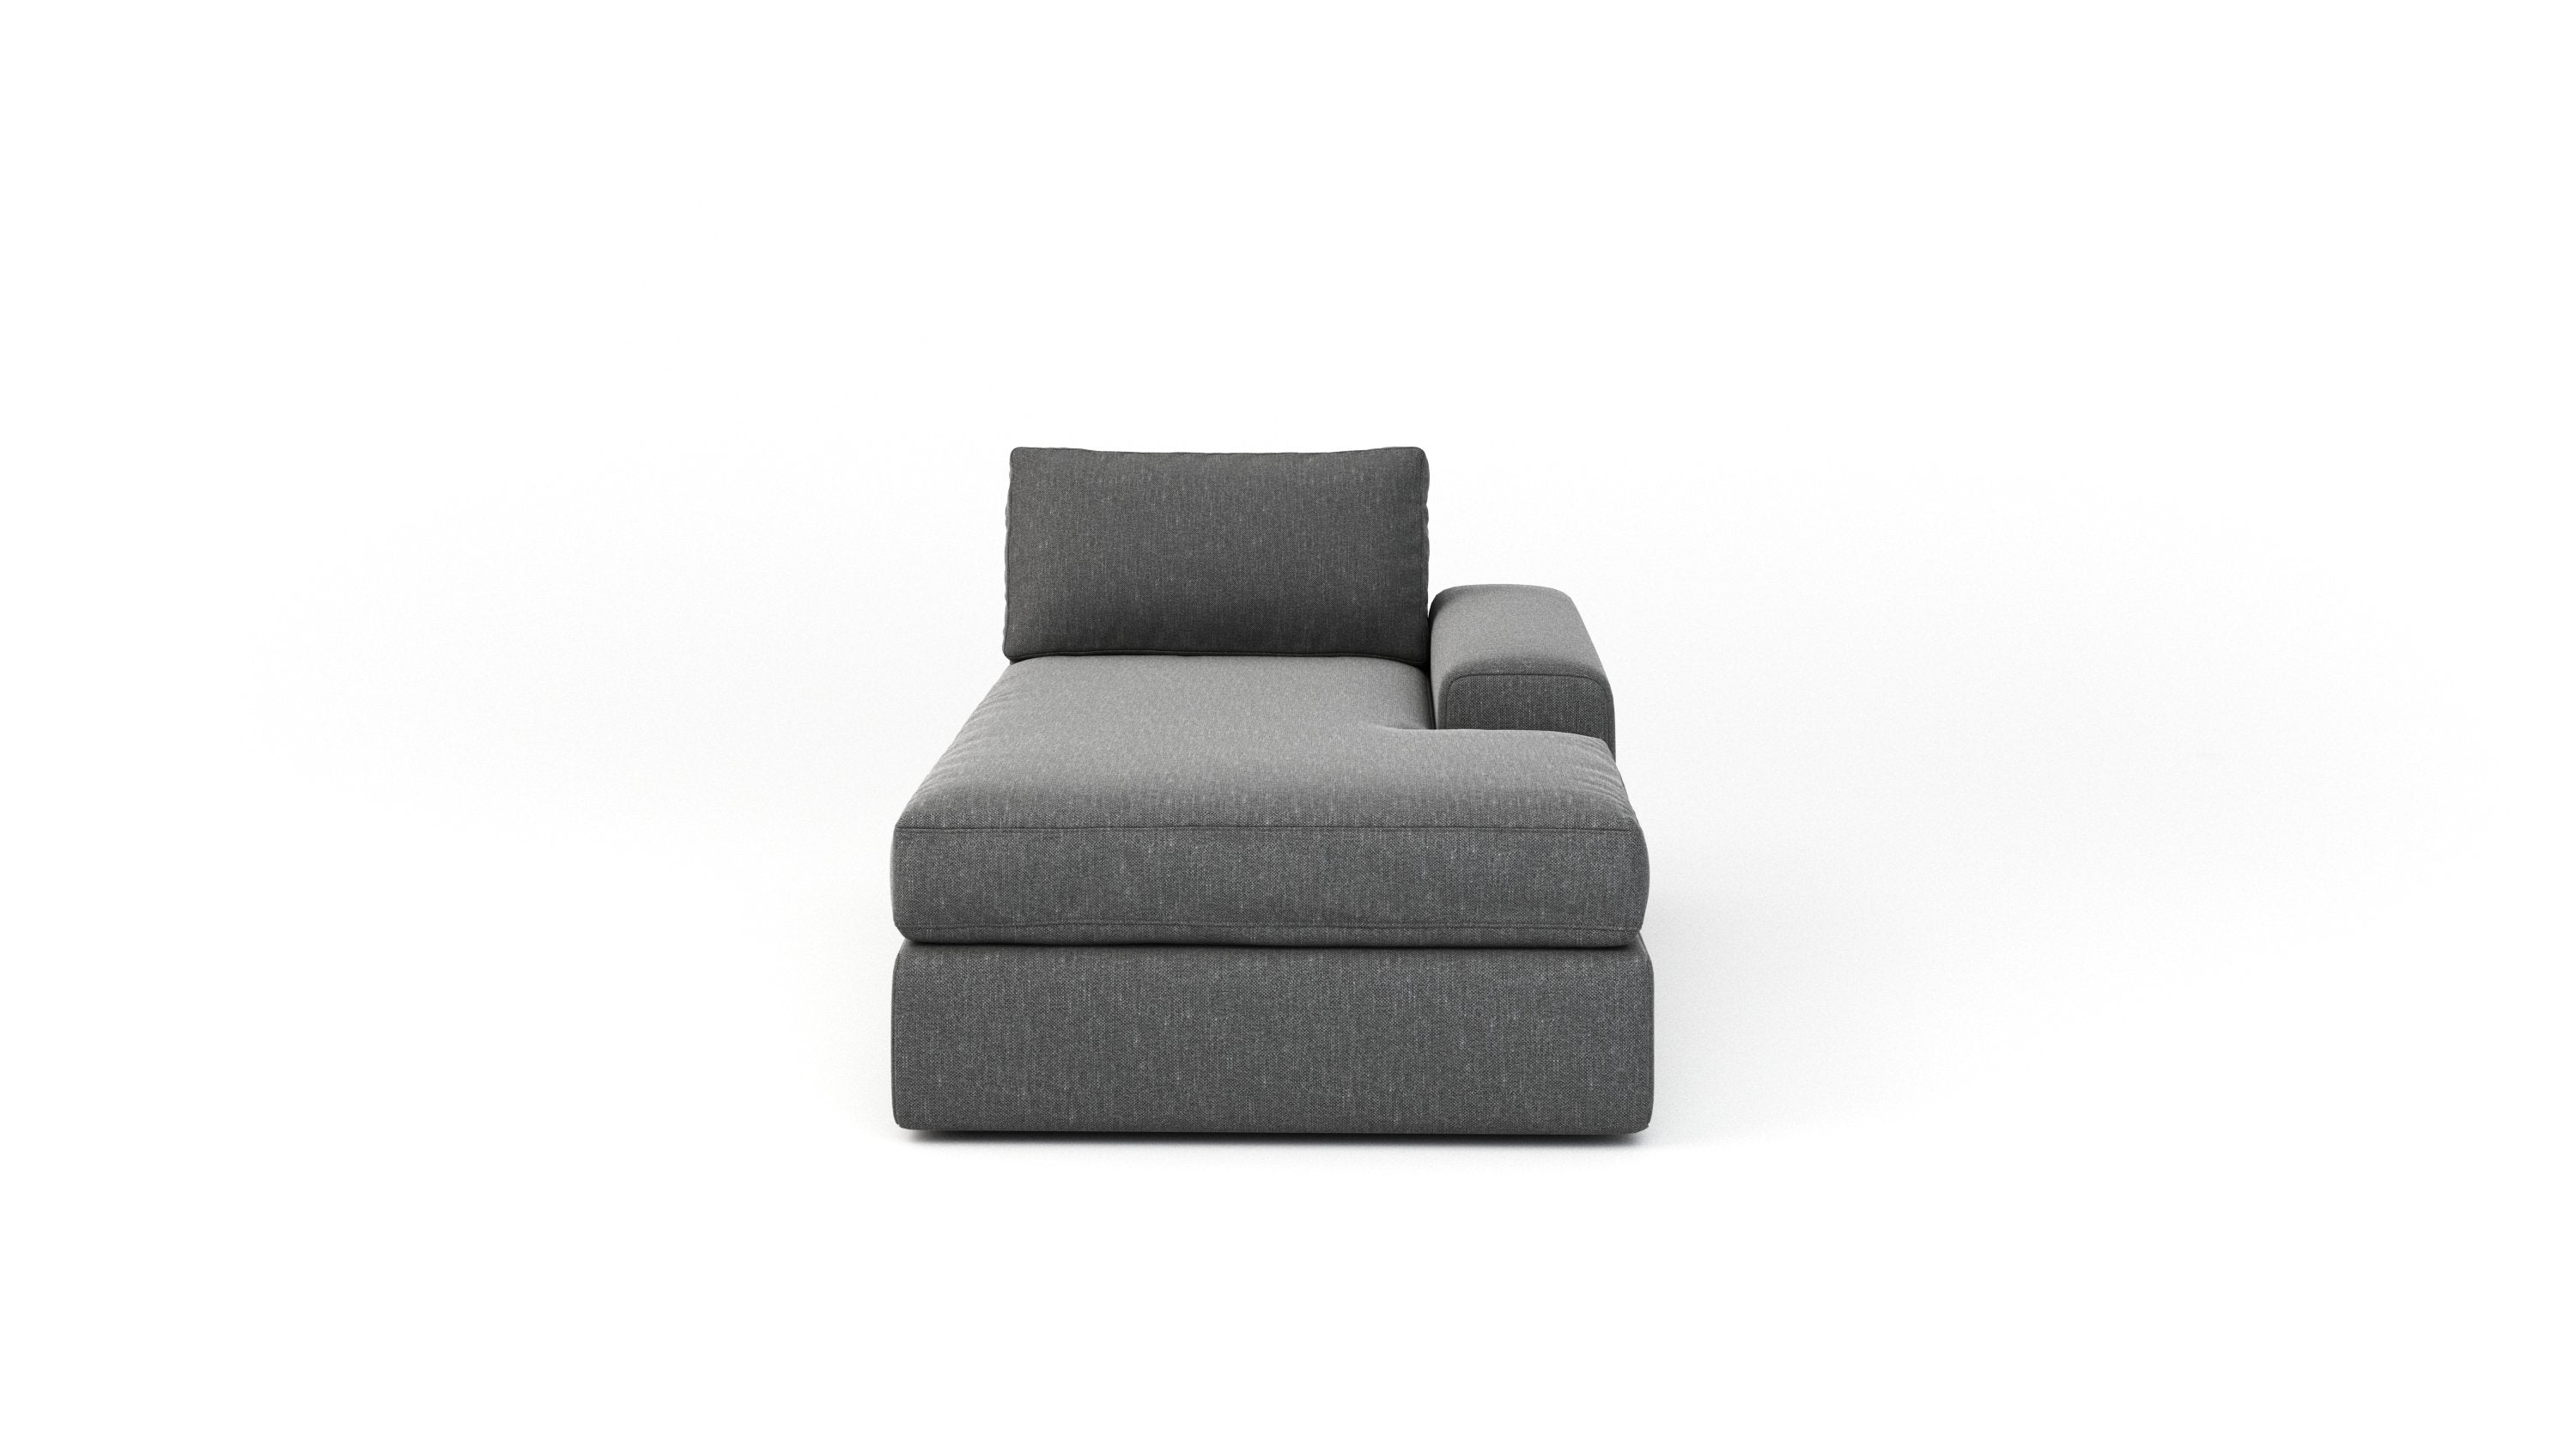 OG Couch Potato Chaise